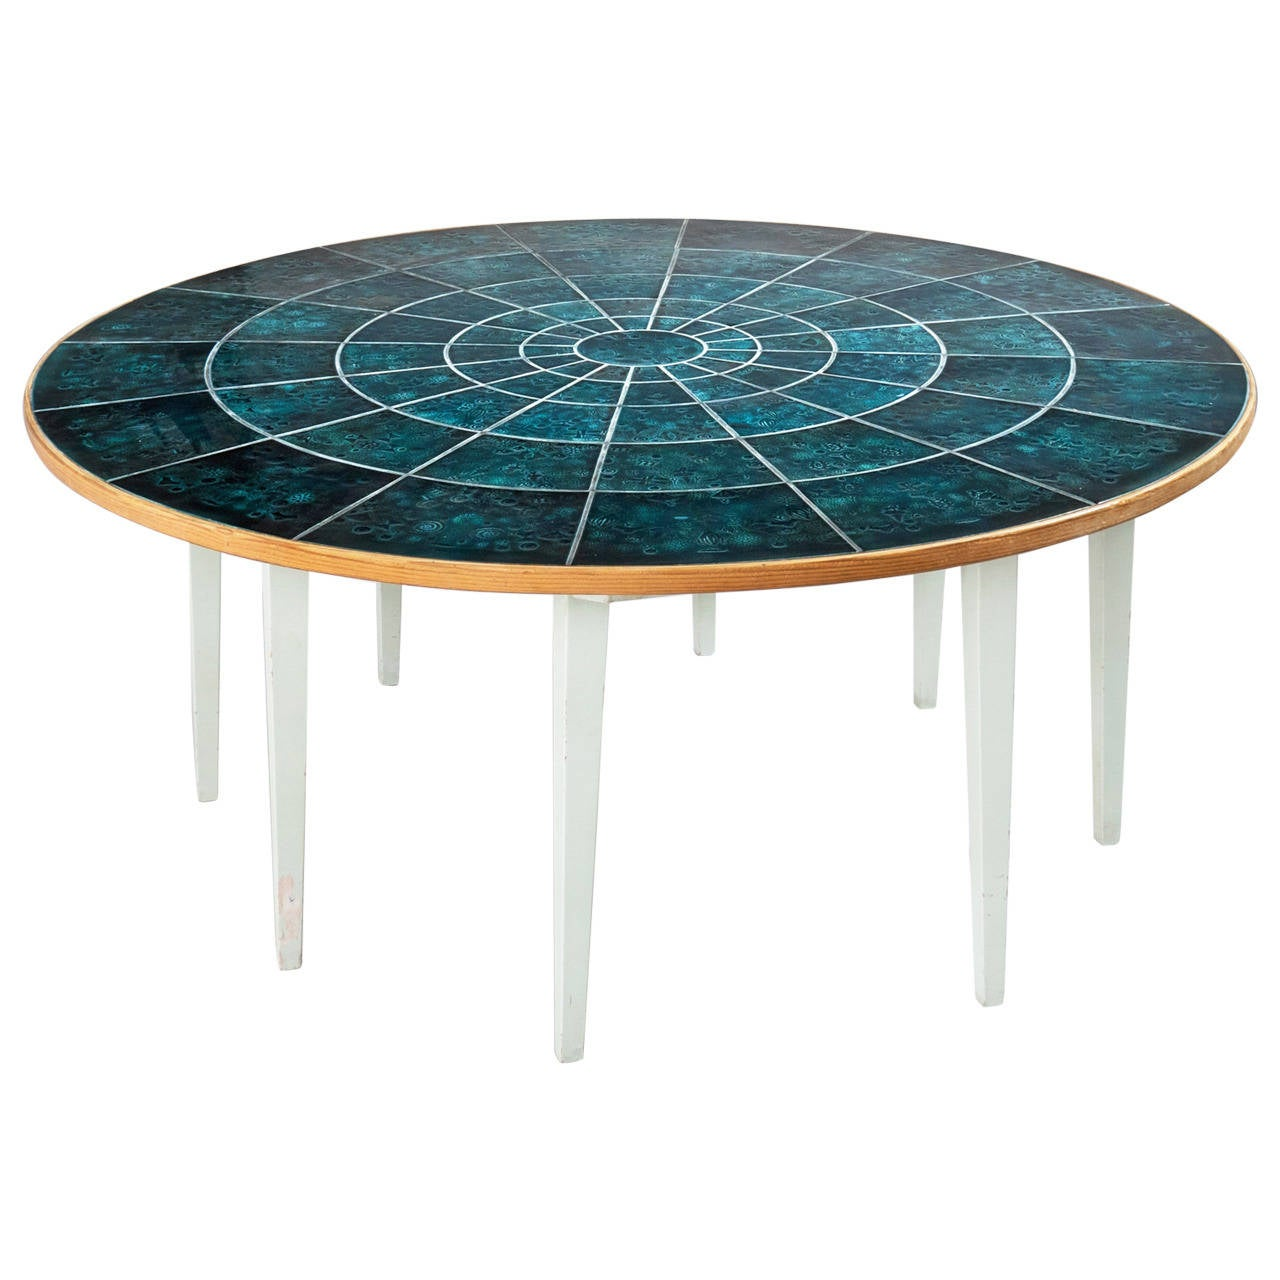 Bj rn wiinblad round dining table with hand painted tiles for Painted dining table